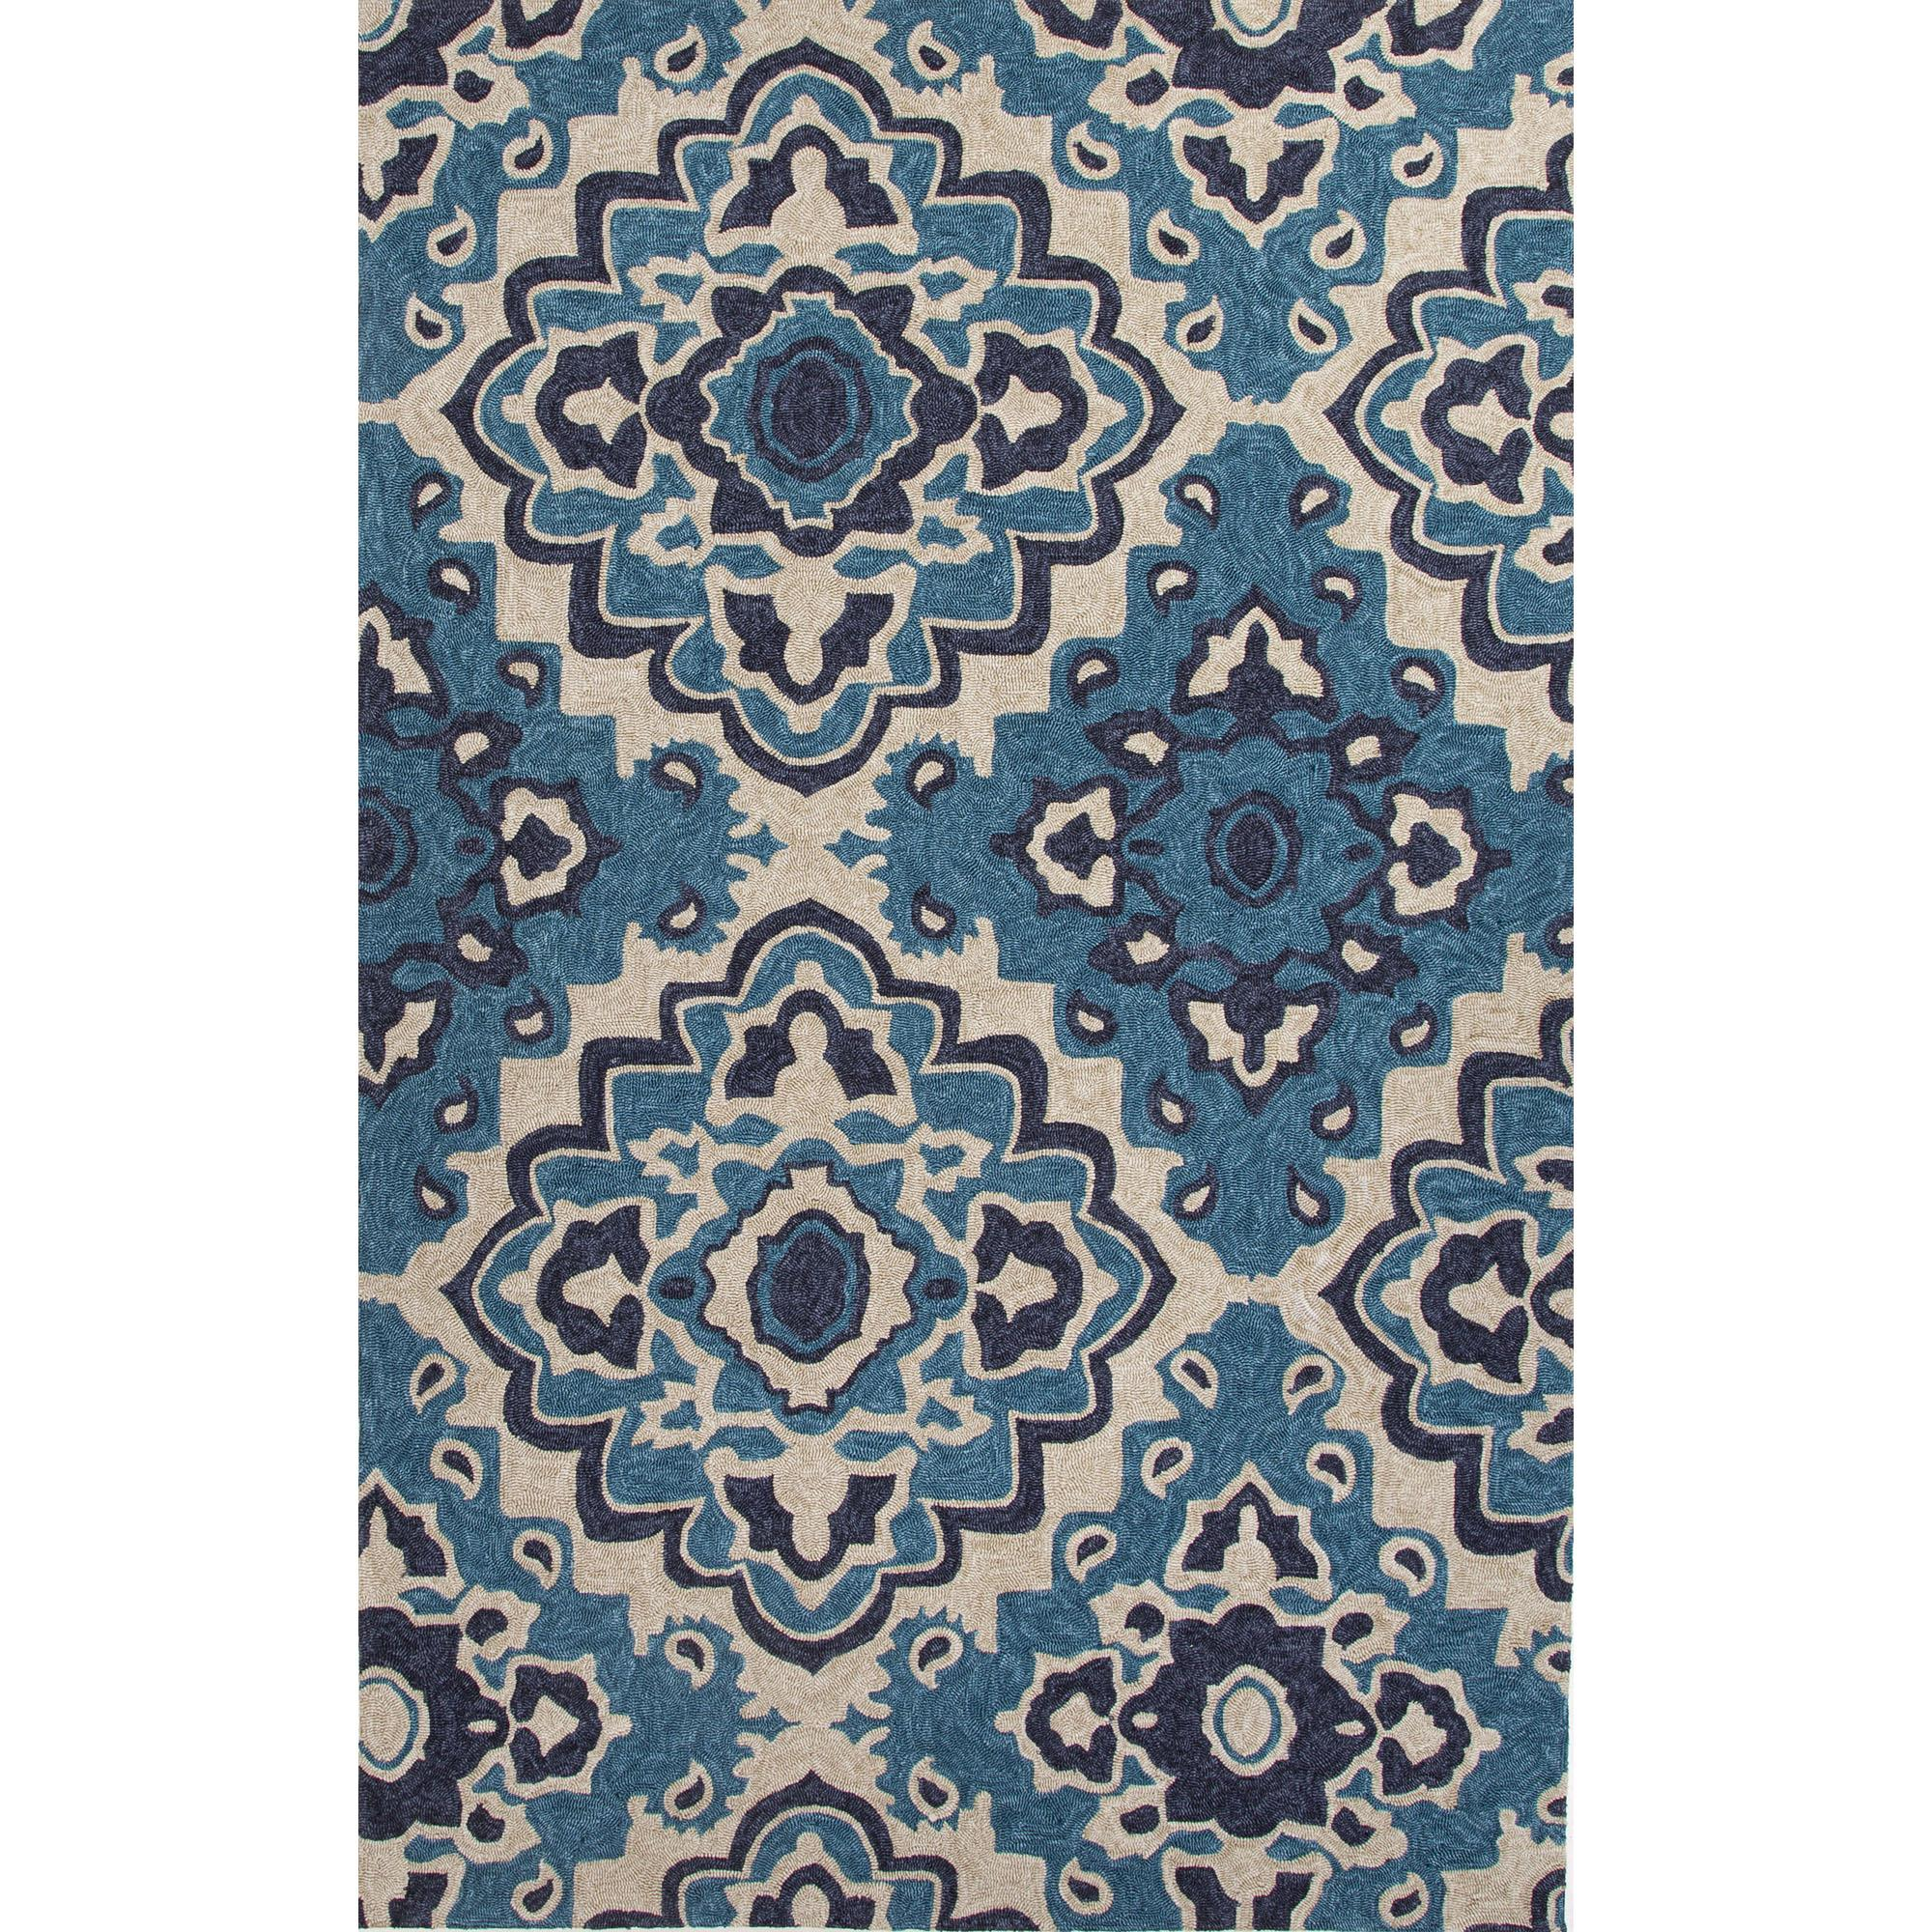 JAIPUR Rugs Catalina 7.6 x 9.6 Rug - Item Number: RUG116308